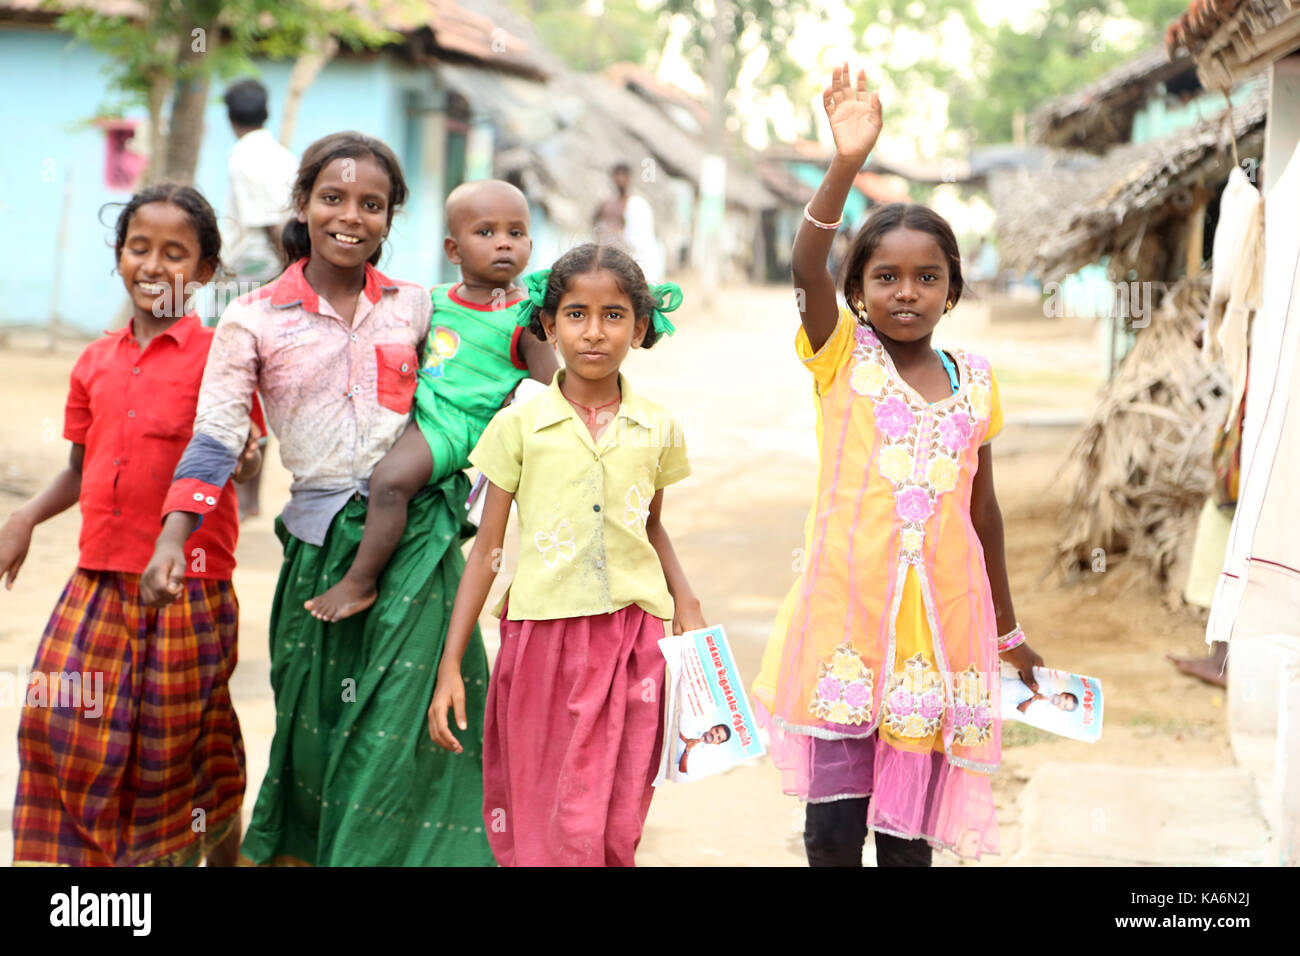 Portrait of happy kids outdoor looking at camera - Stock Image